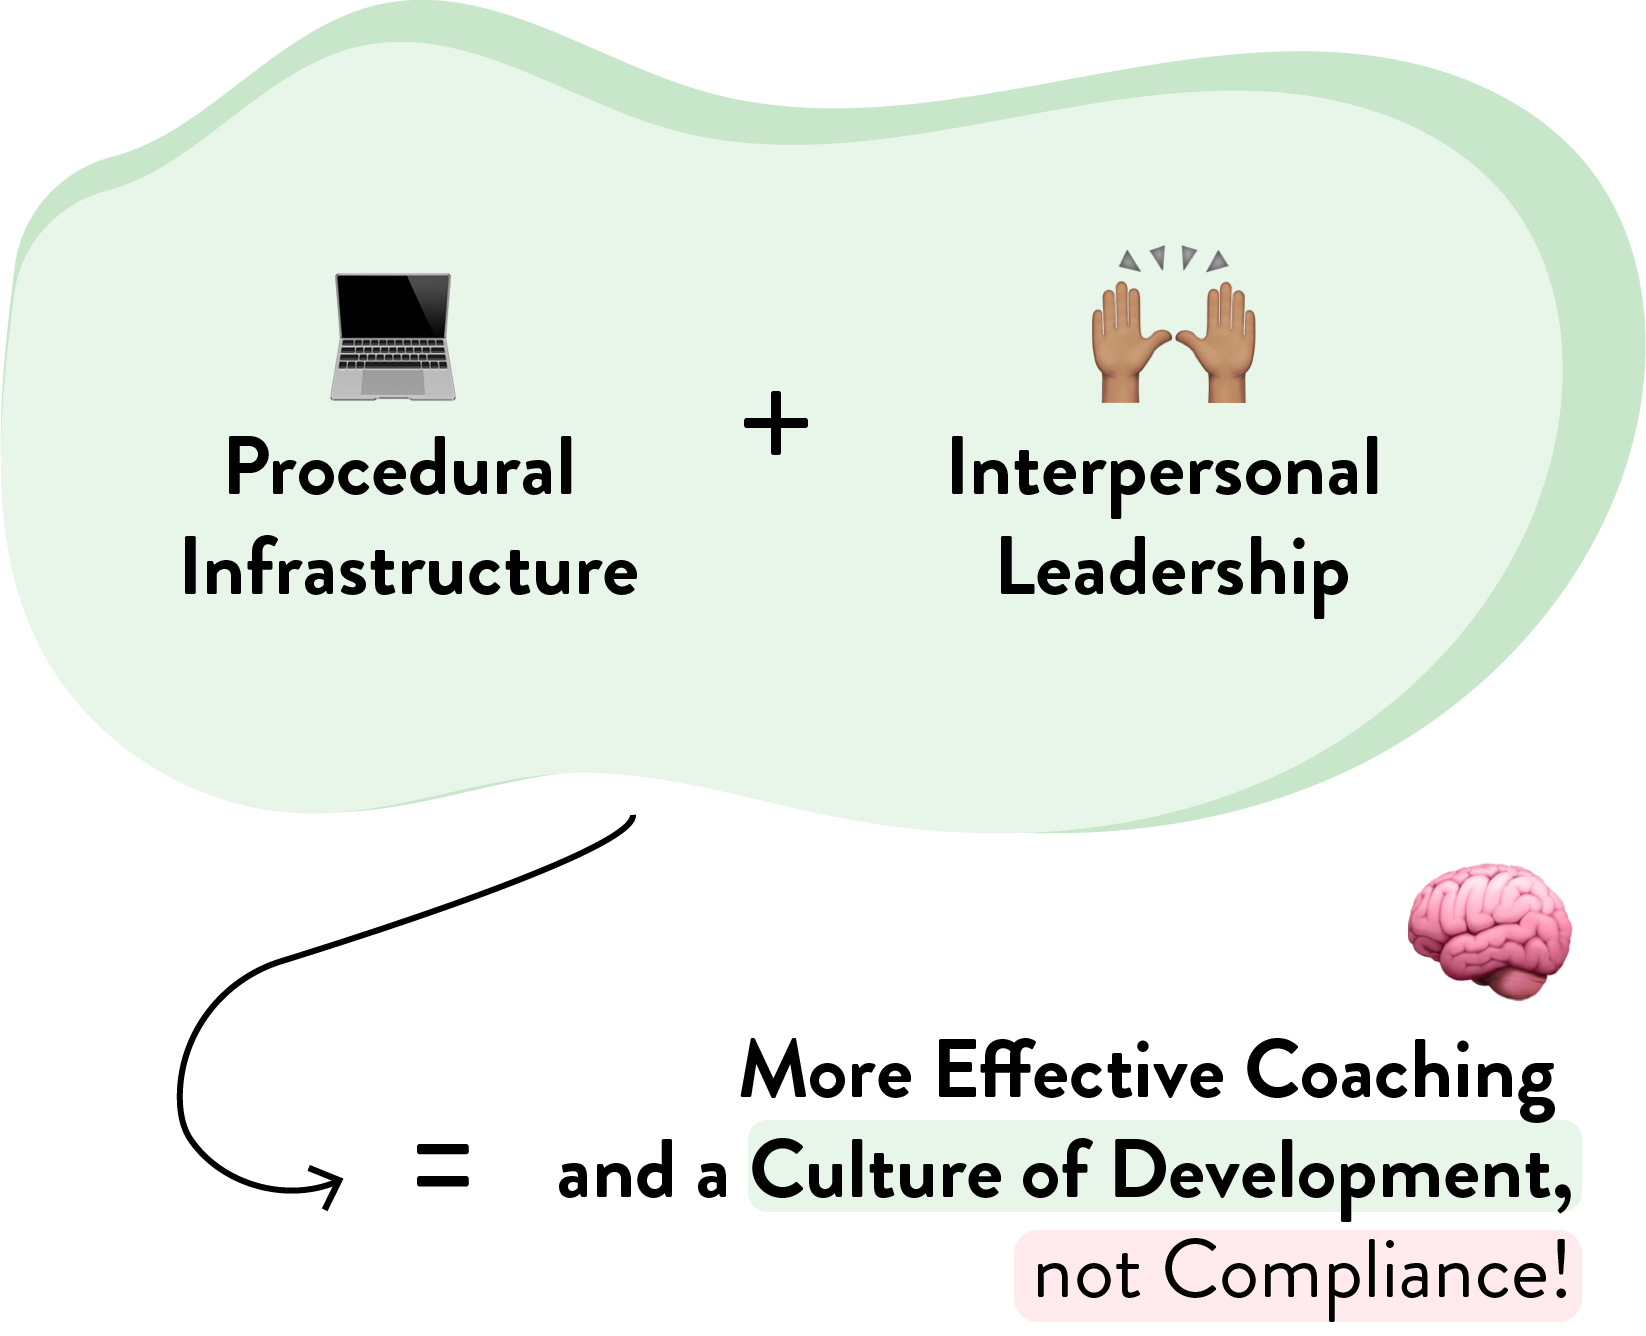 procedural infrastructure + interpersonal leadership graphic@2x